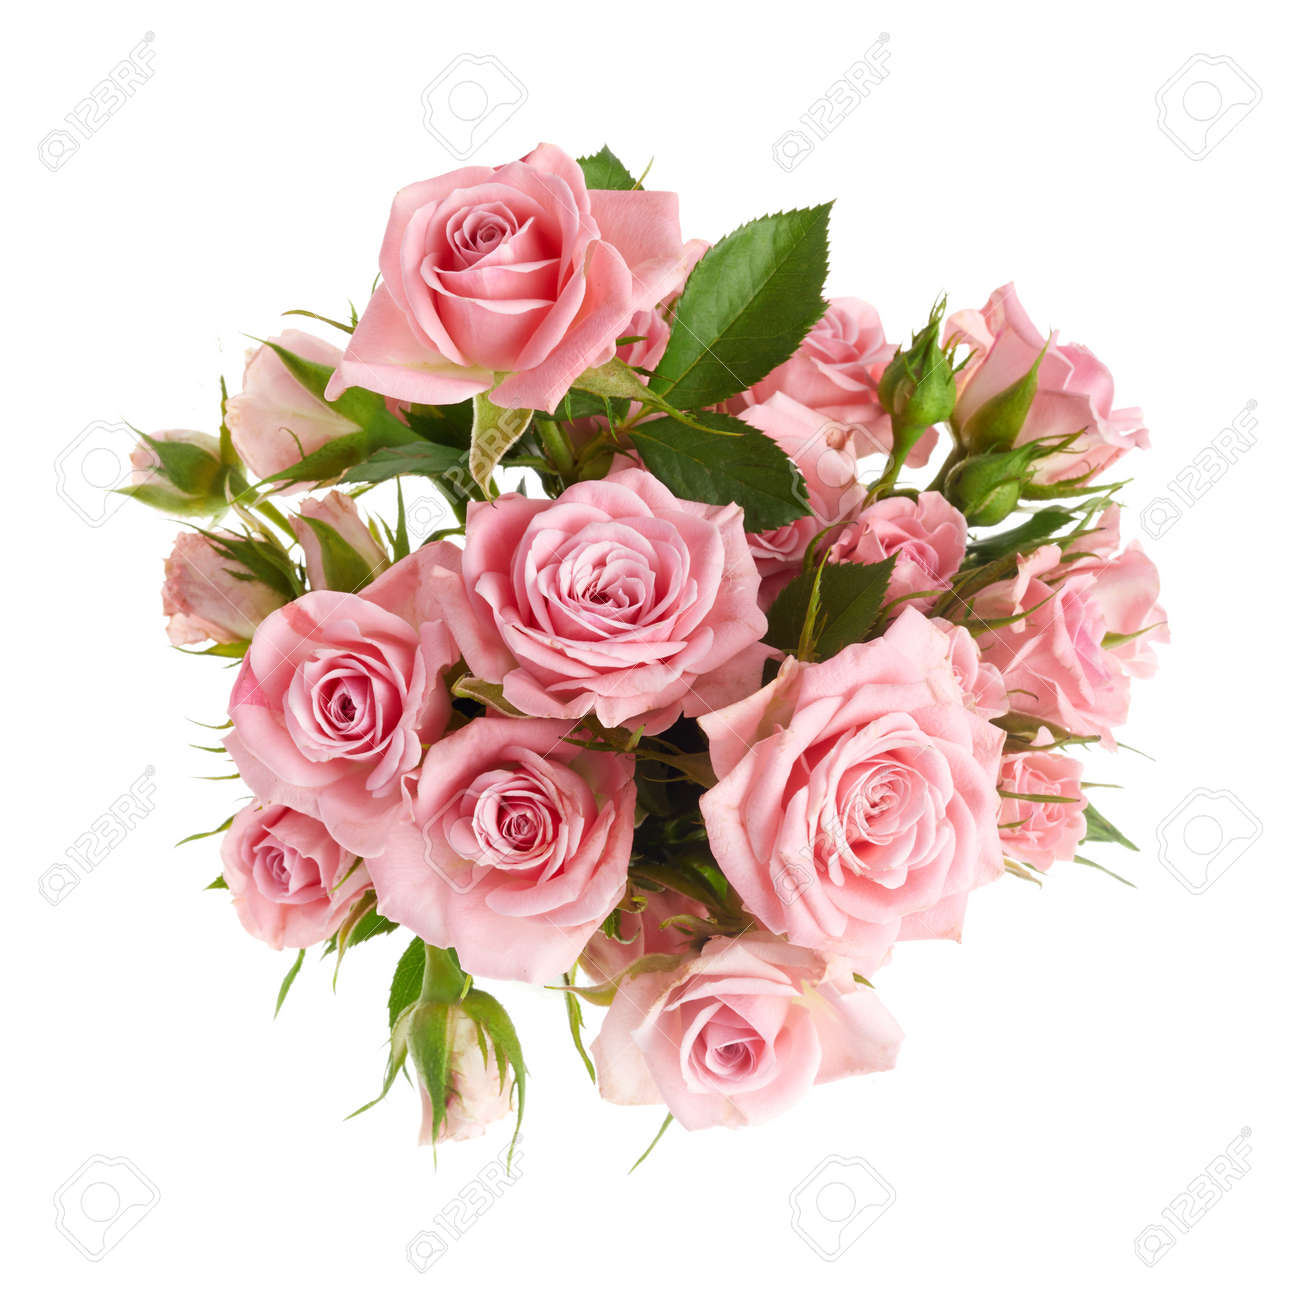 Beautiful pink rose flowers arrangement isolated on white background - 168704938